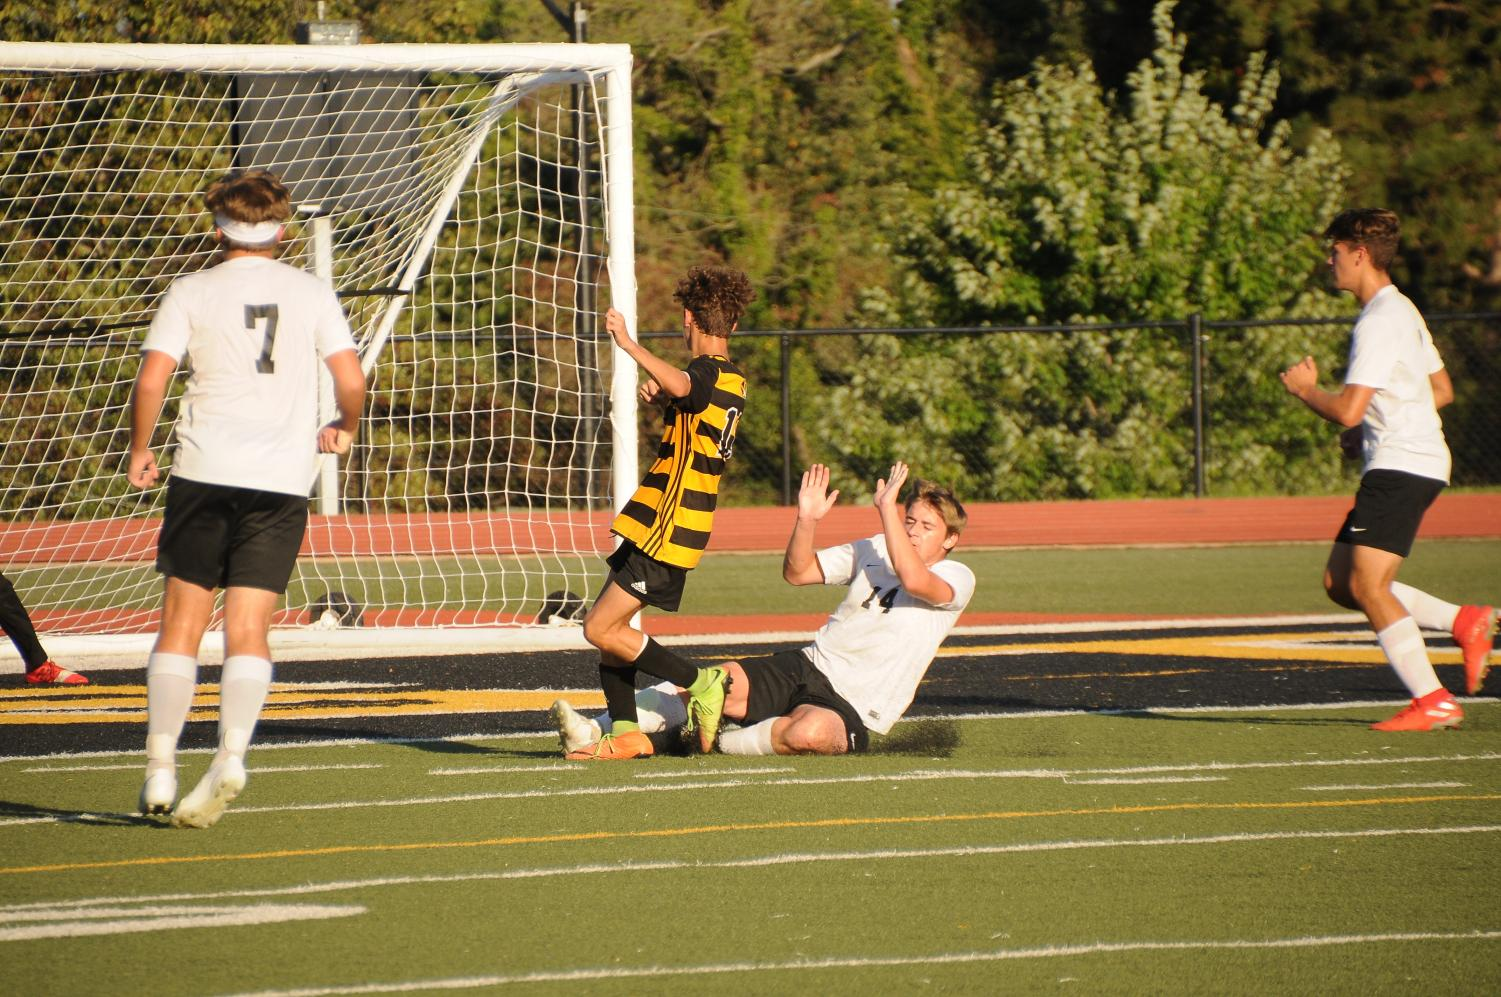 Number 14 Jedediah Dewey mid fall after stopping opponent from scoring a goal.